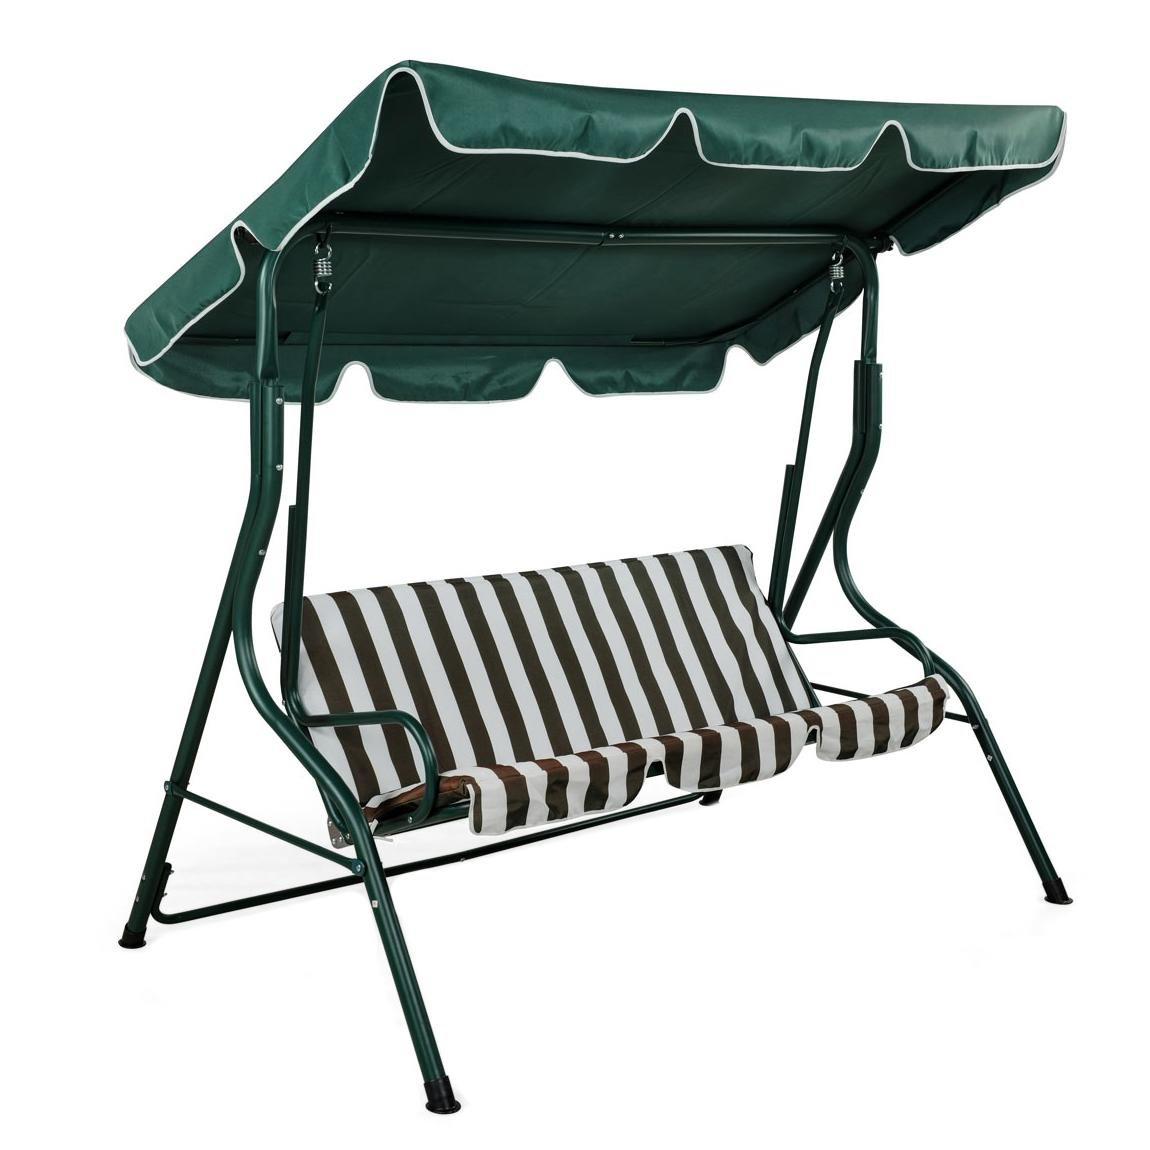 Garden Swing Bench Chair For 3 Person Oypla Stocking The Very Best In Toys